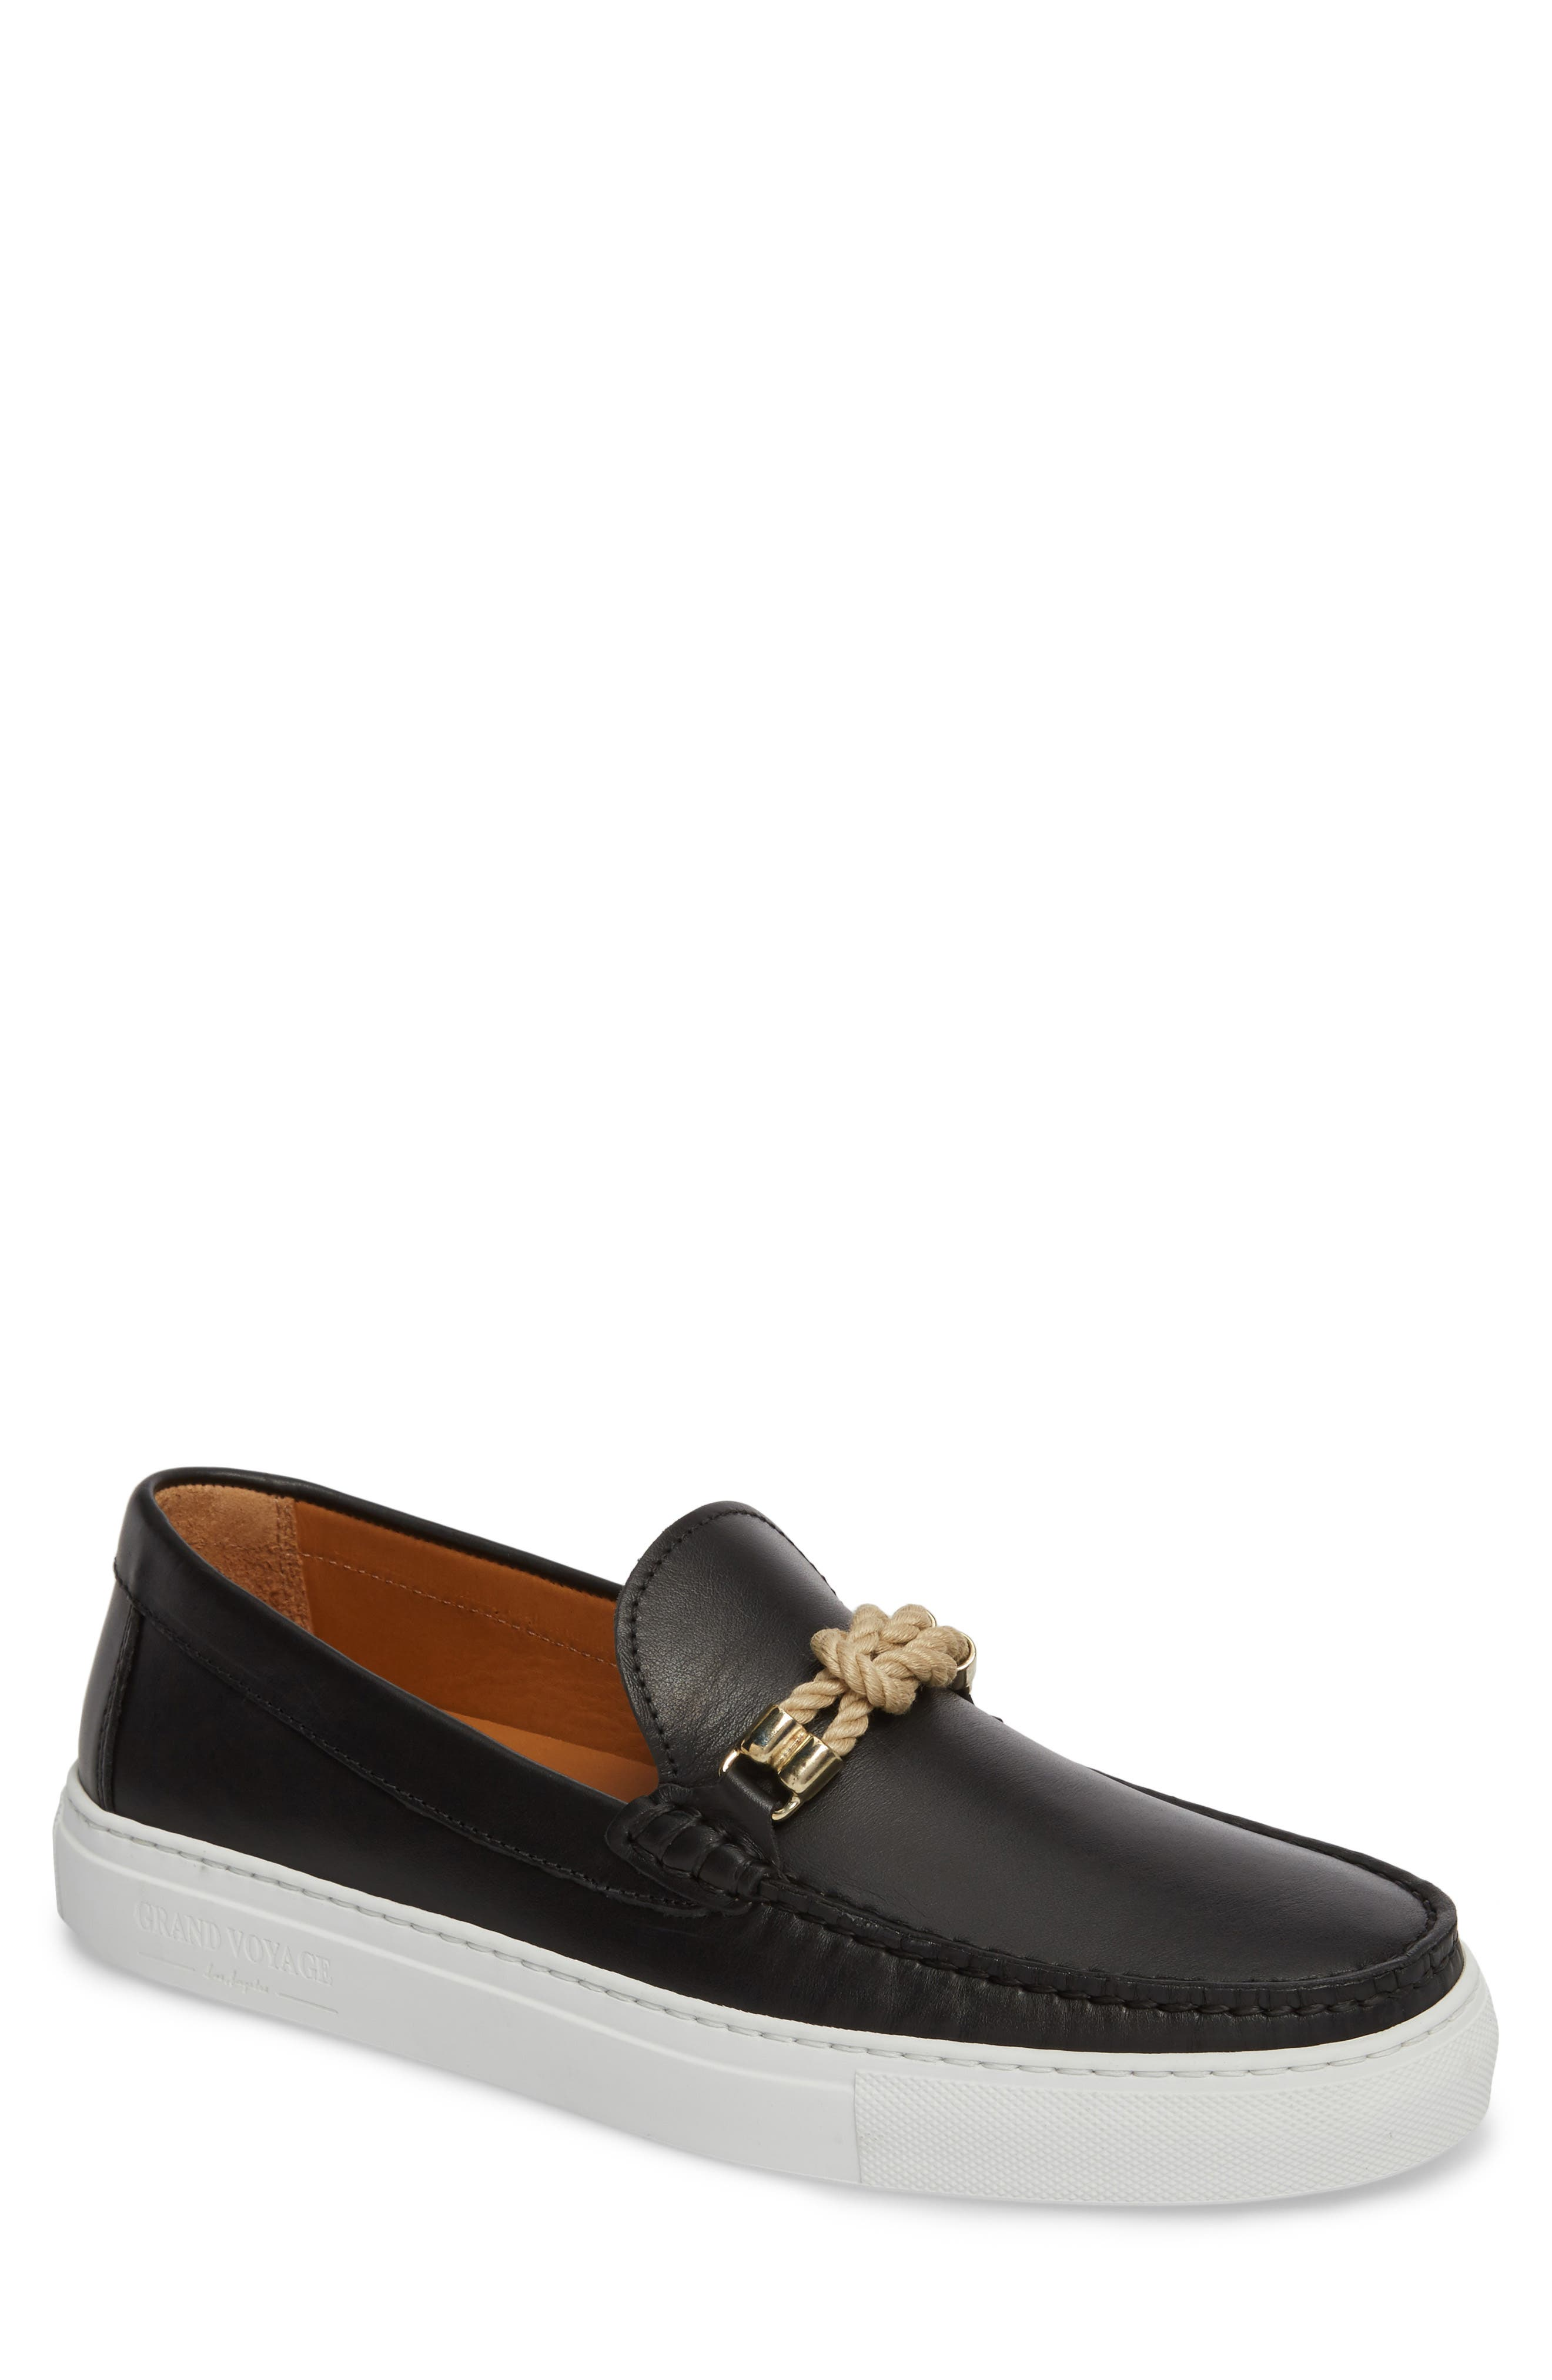 Bitton Square Knot Loafer,                             Main thumbnail 1, color,                             BLACK LEATHER